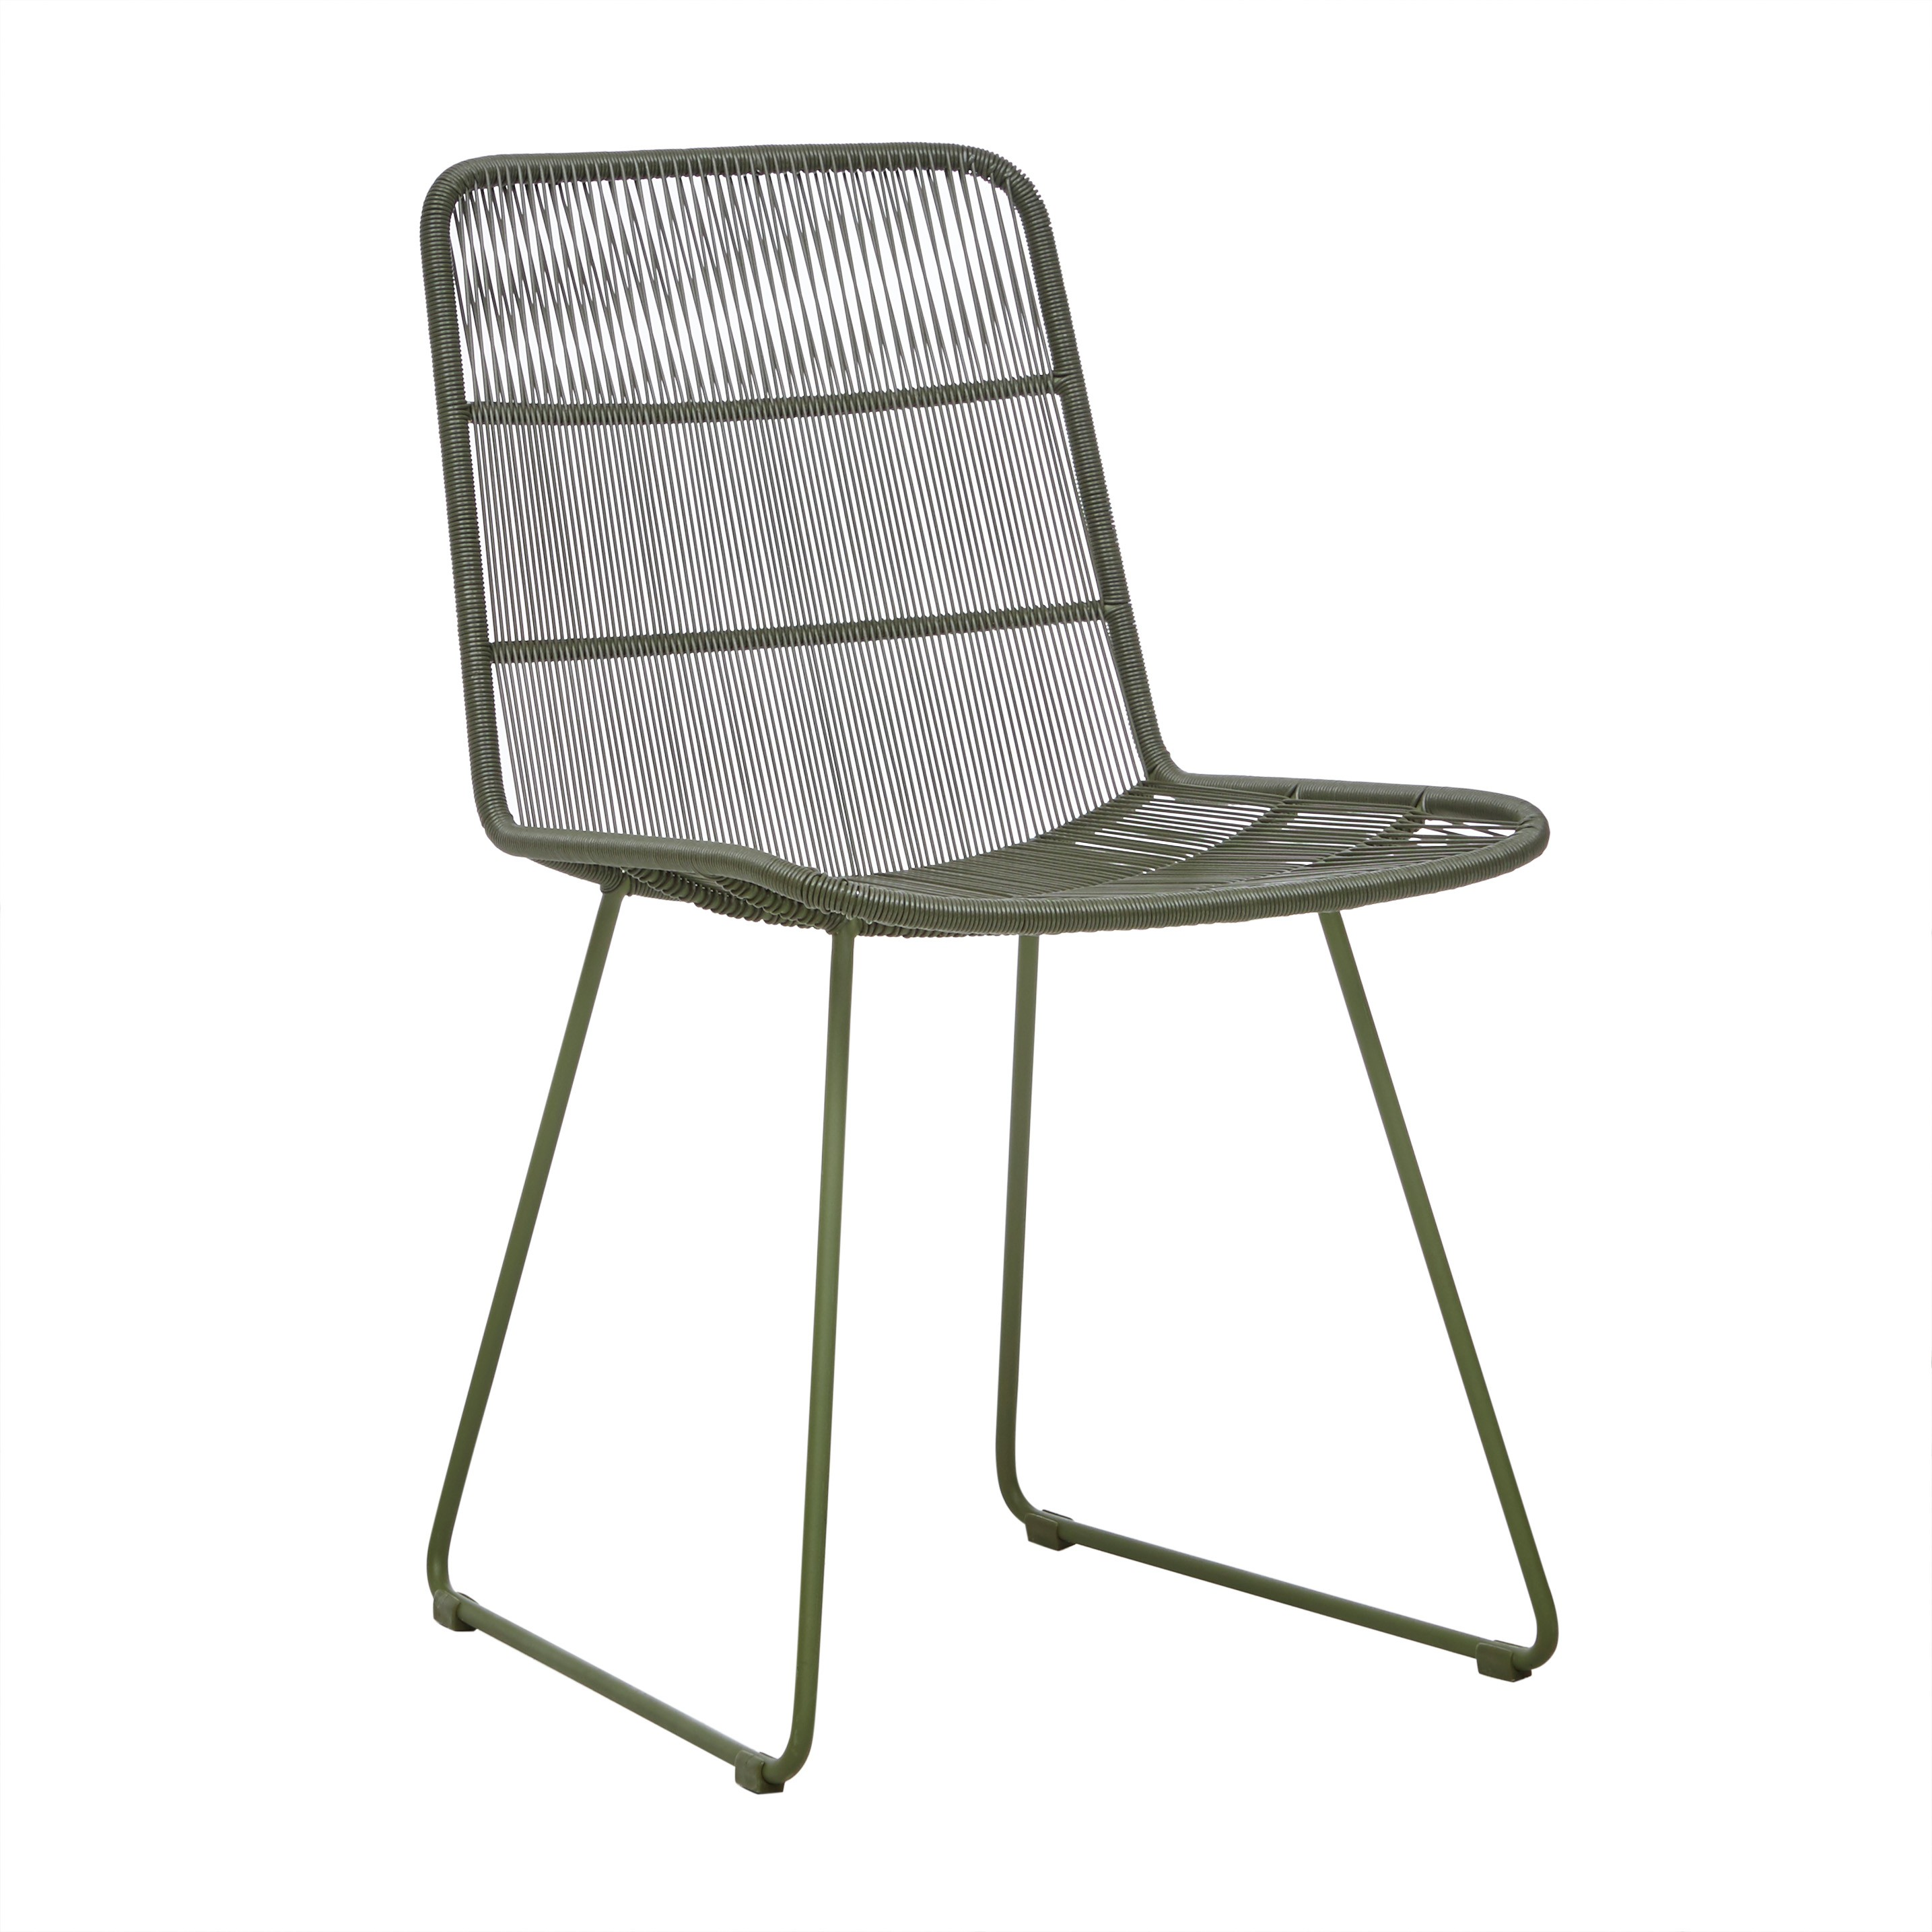 Furniture Hero-Images Dining-Chairs-Benches-and-Stools granada-sleigh-dining-chair-01